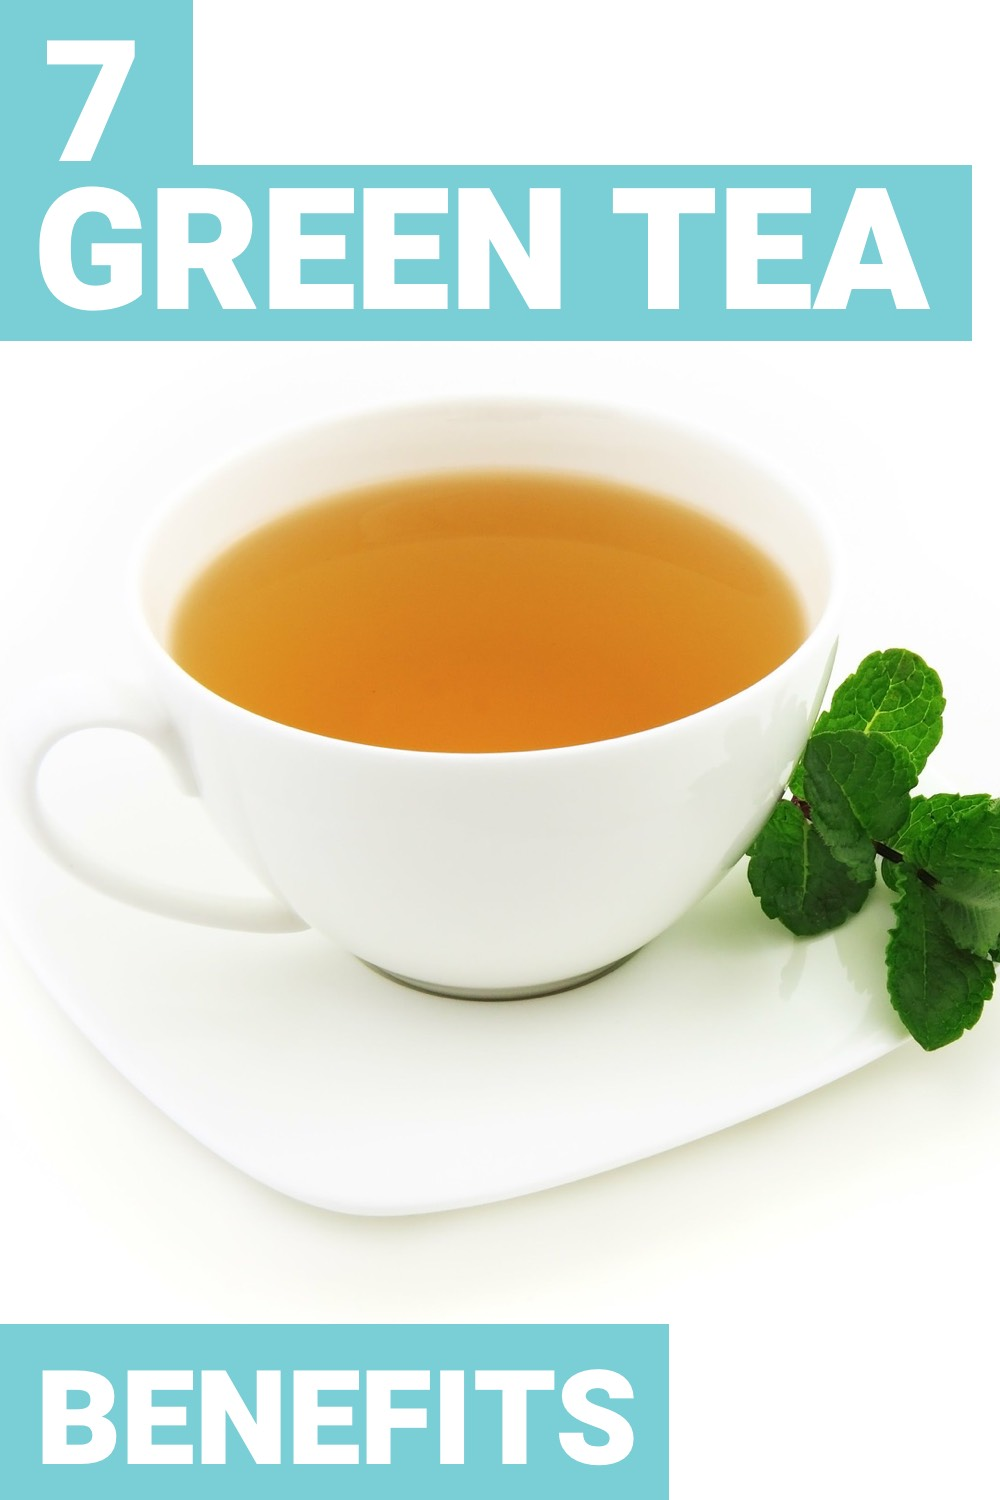 Green tea is a popular drink that is extremely healthy for you. Here are 7 benefits of green tea.